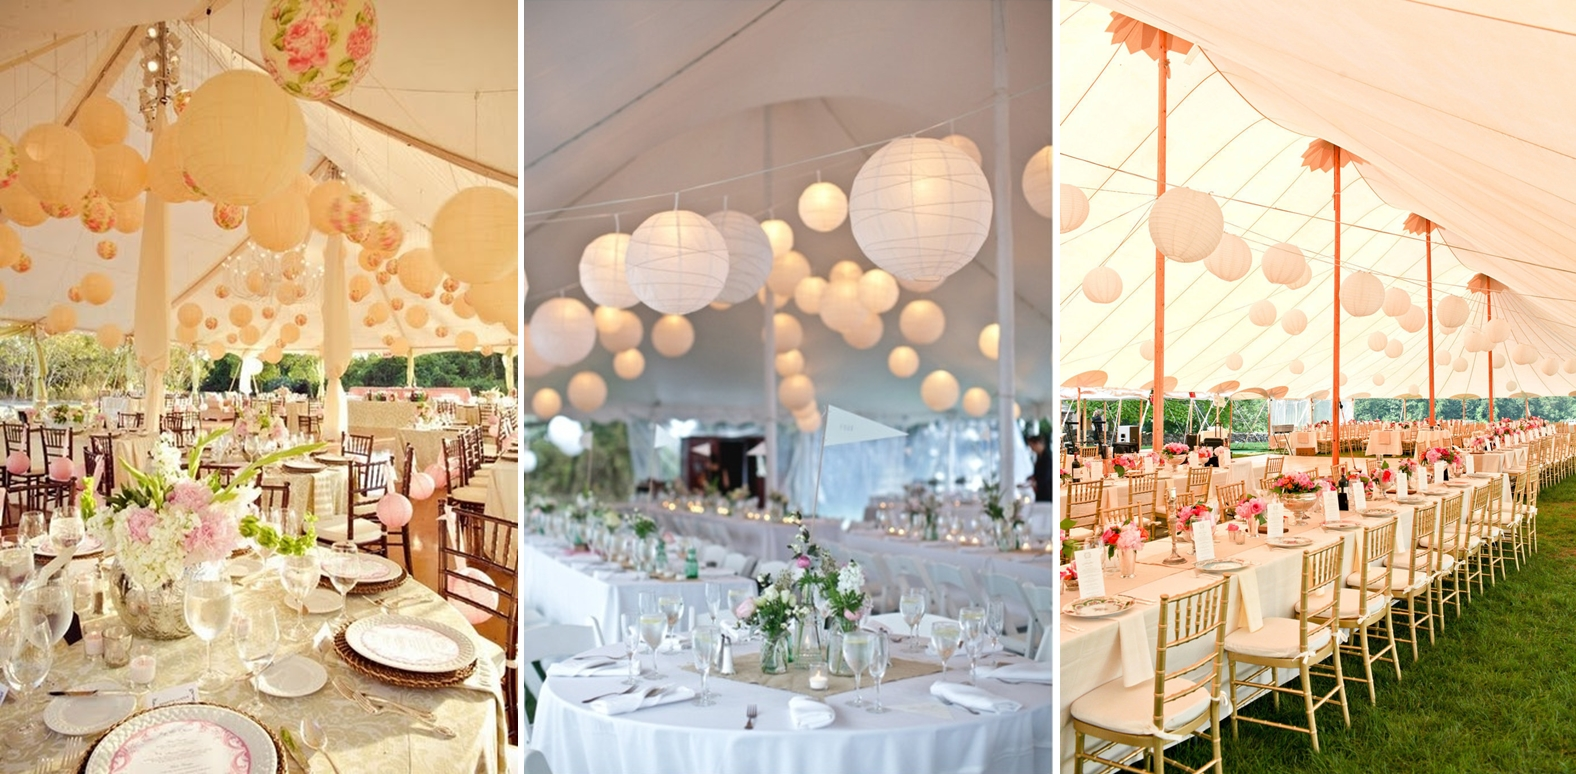 Wedding tent decoration steves decor from chandelier to lanterns to anything in between were in love with this romantic and stunning trend hanging wedding decor definitely adds a layer of junglespirit Choice Image